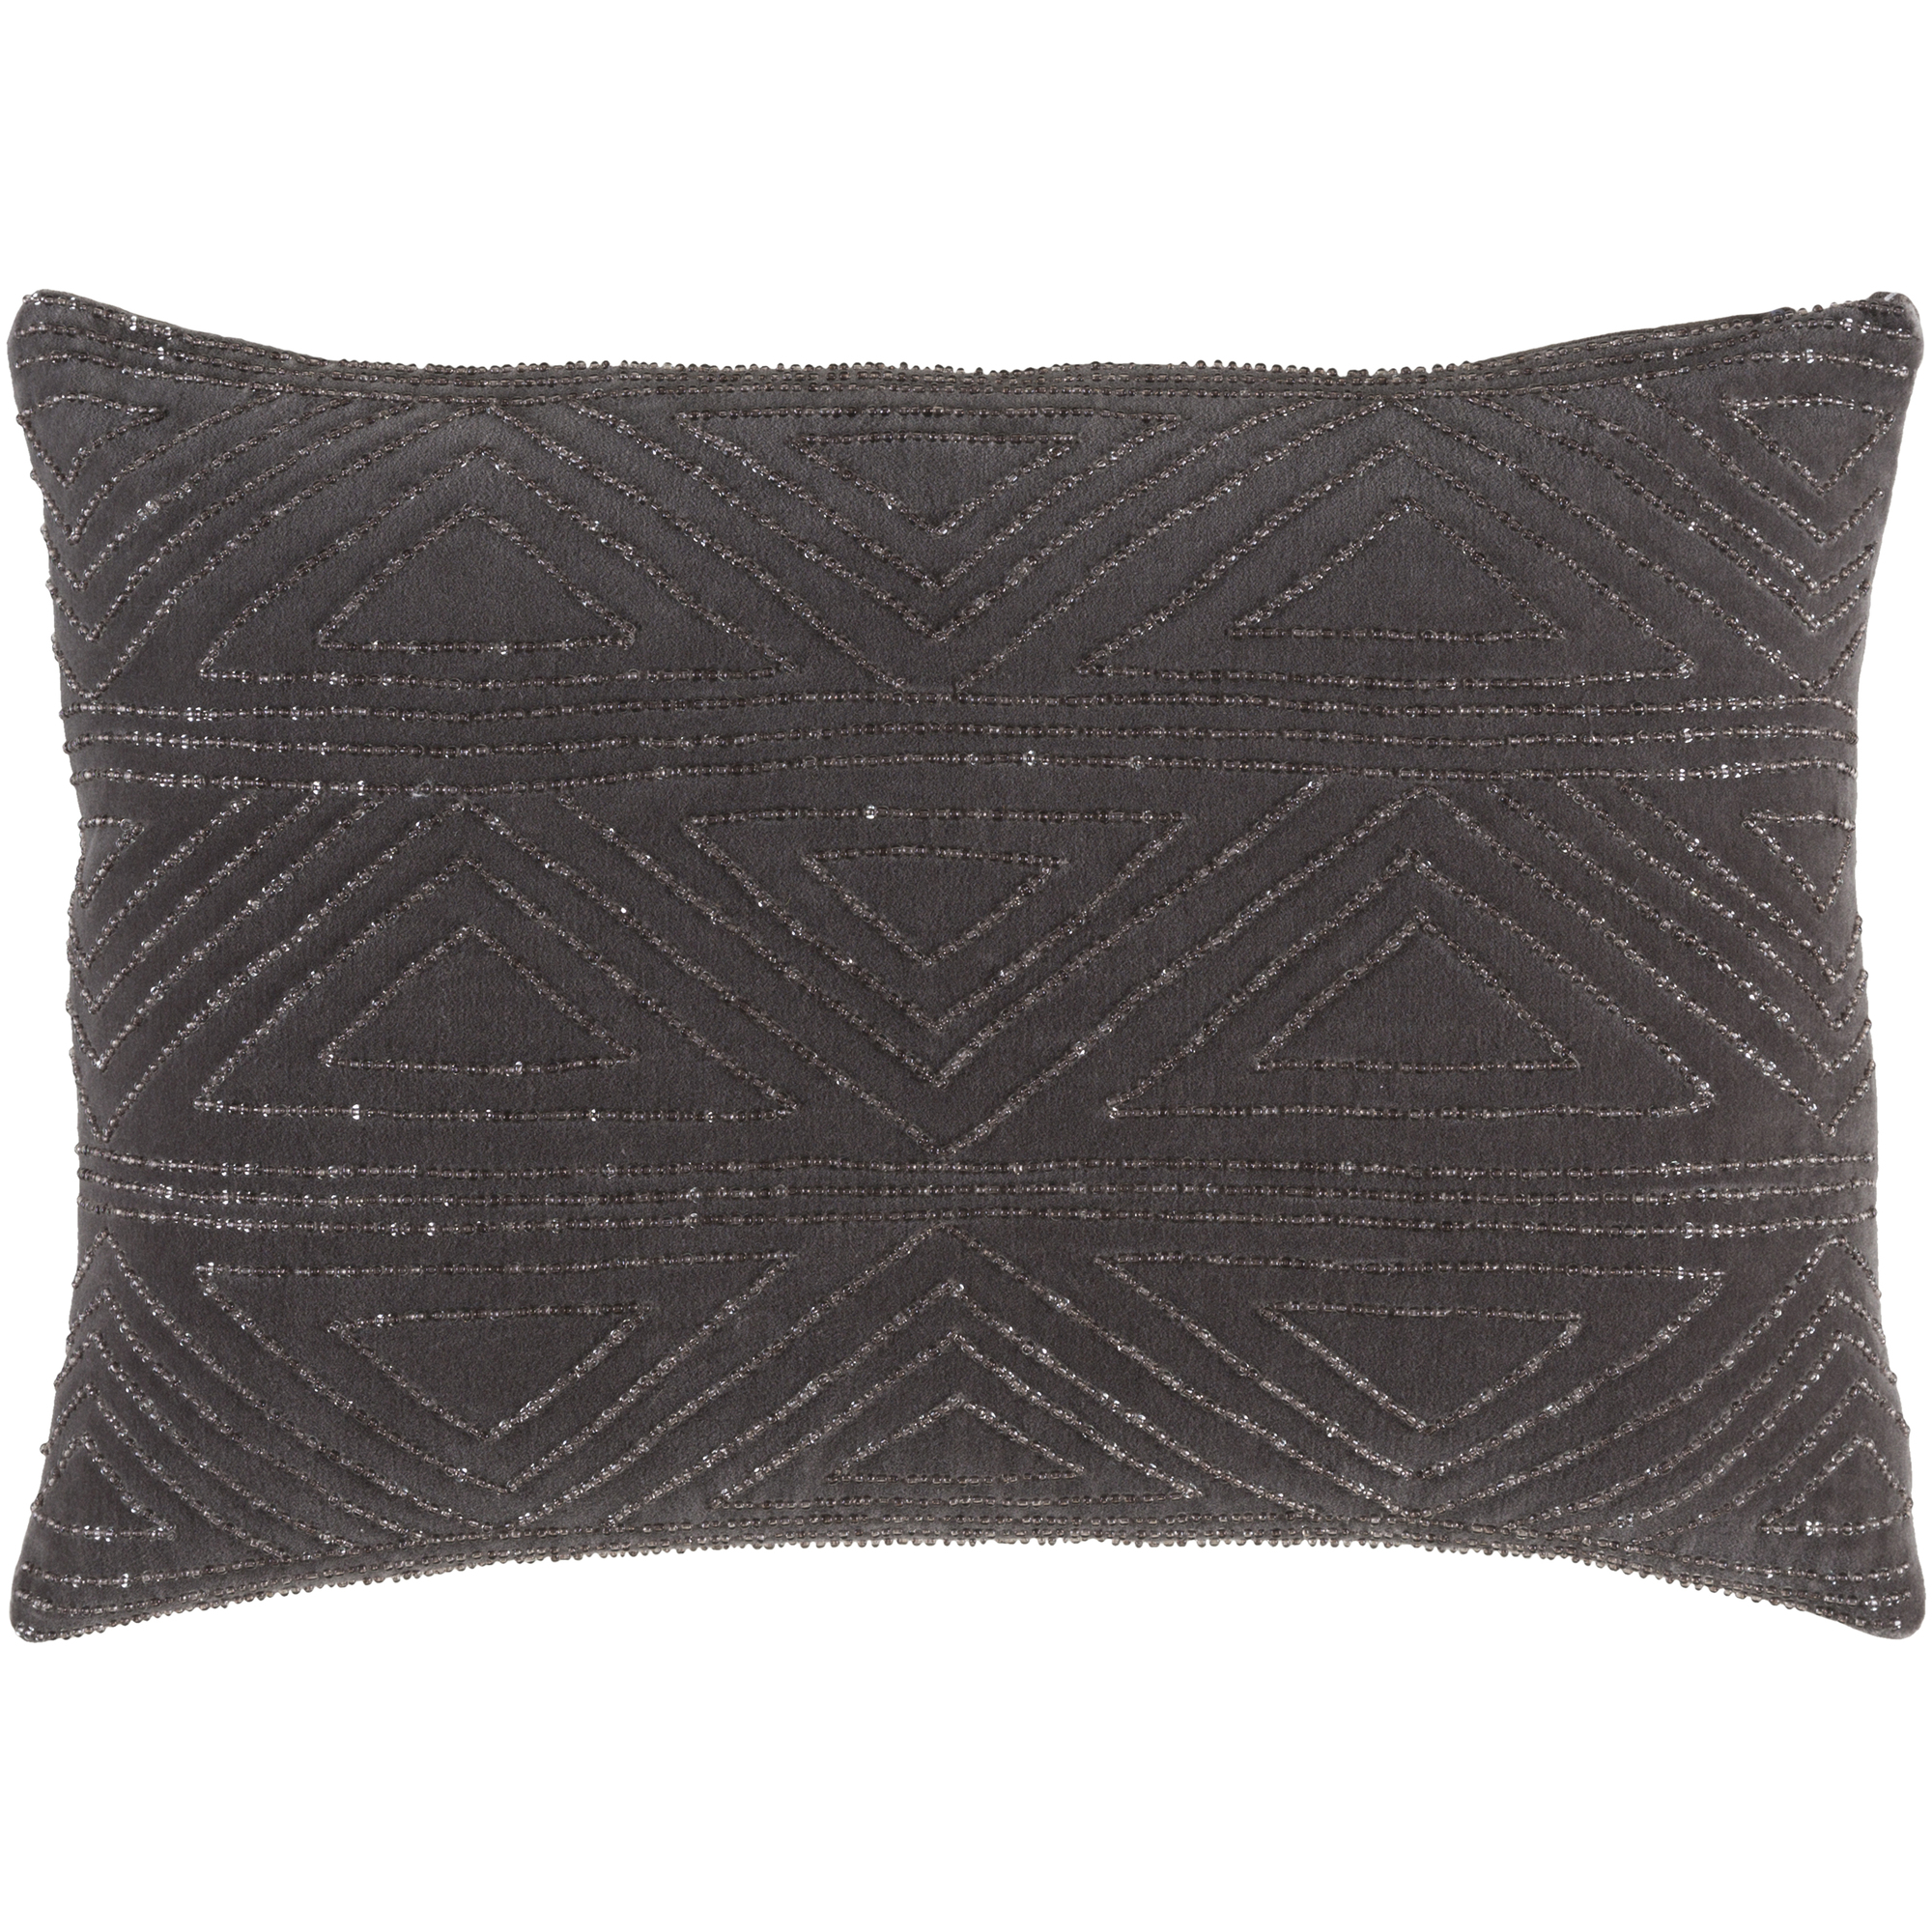 "Art of Knot Elmas 13"" x 19"" Pillow Cover"